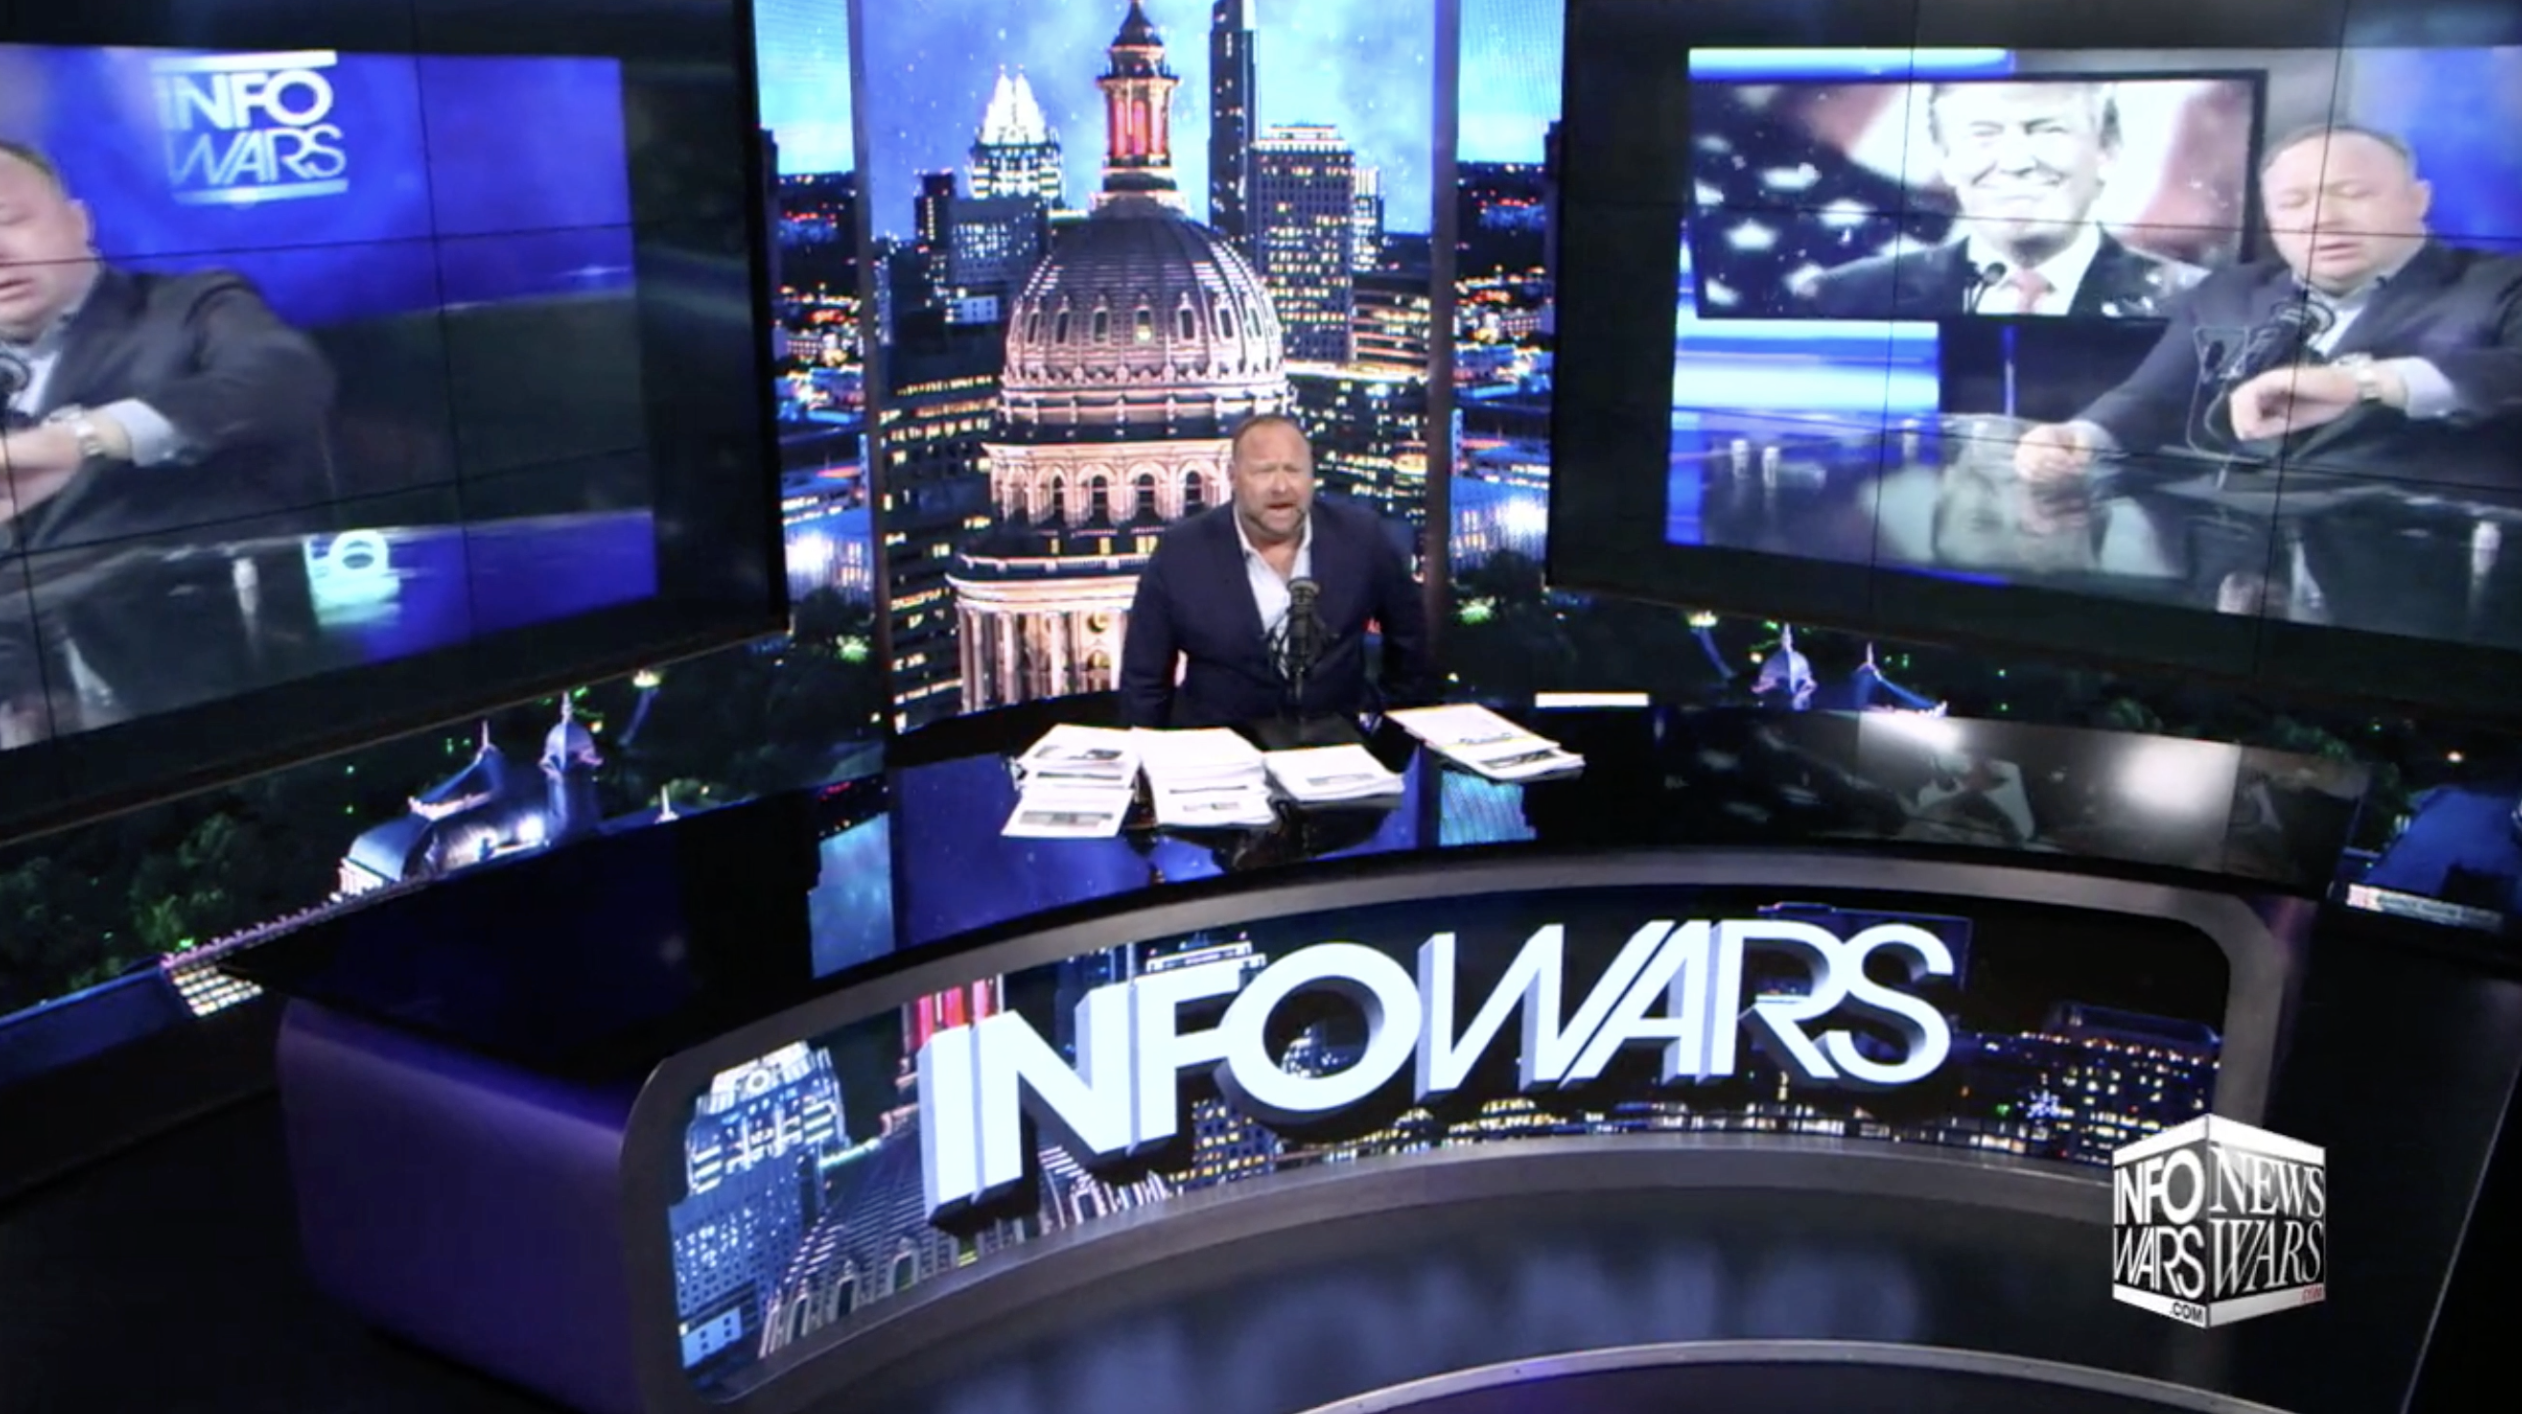 Alex Jones Infowars Studio President Trump EXZM July 29th 2020